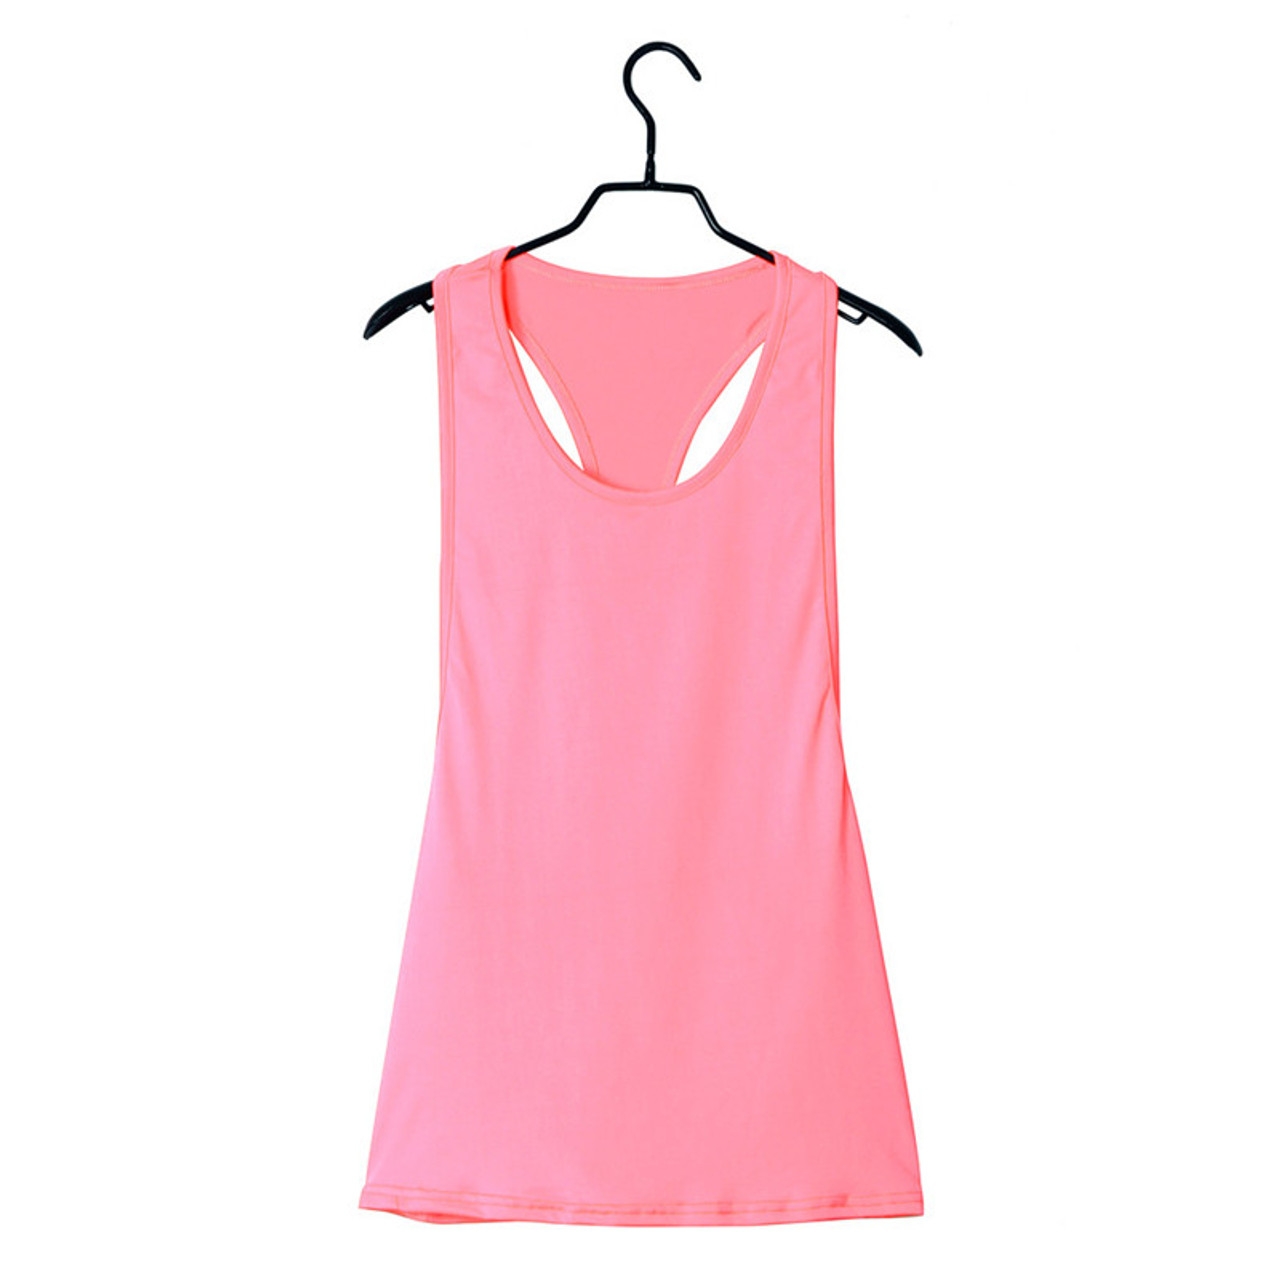 b329a46d965ee8 ... Feitong New Fashion Tank Top Women T-shirt Summer Vest Sexy Loose Solid  Color Sleeveless ...